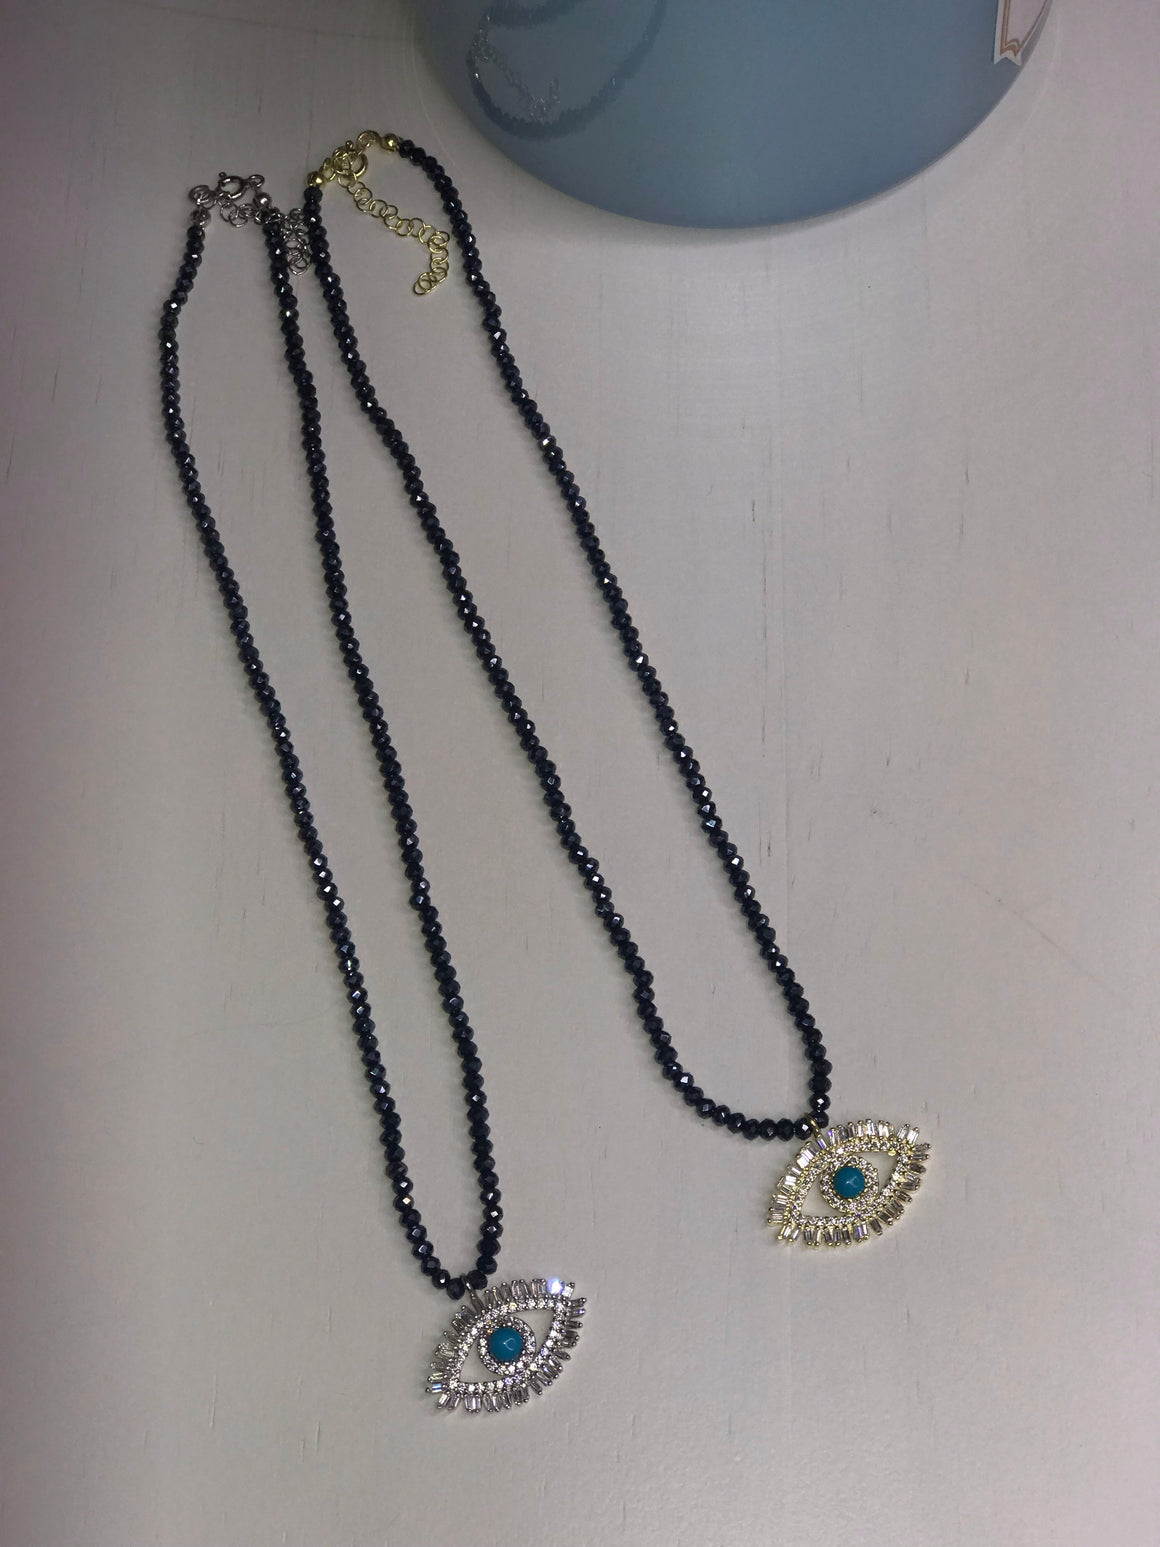 Beaded eye baguette necklace